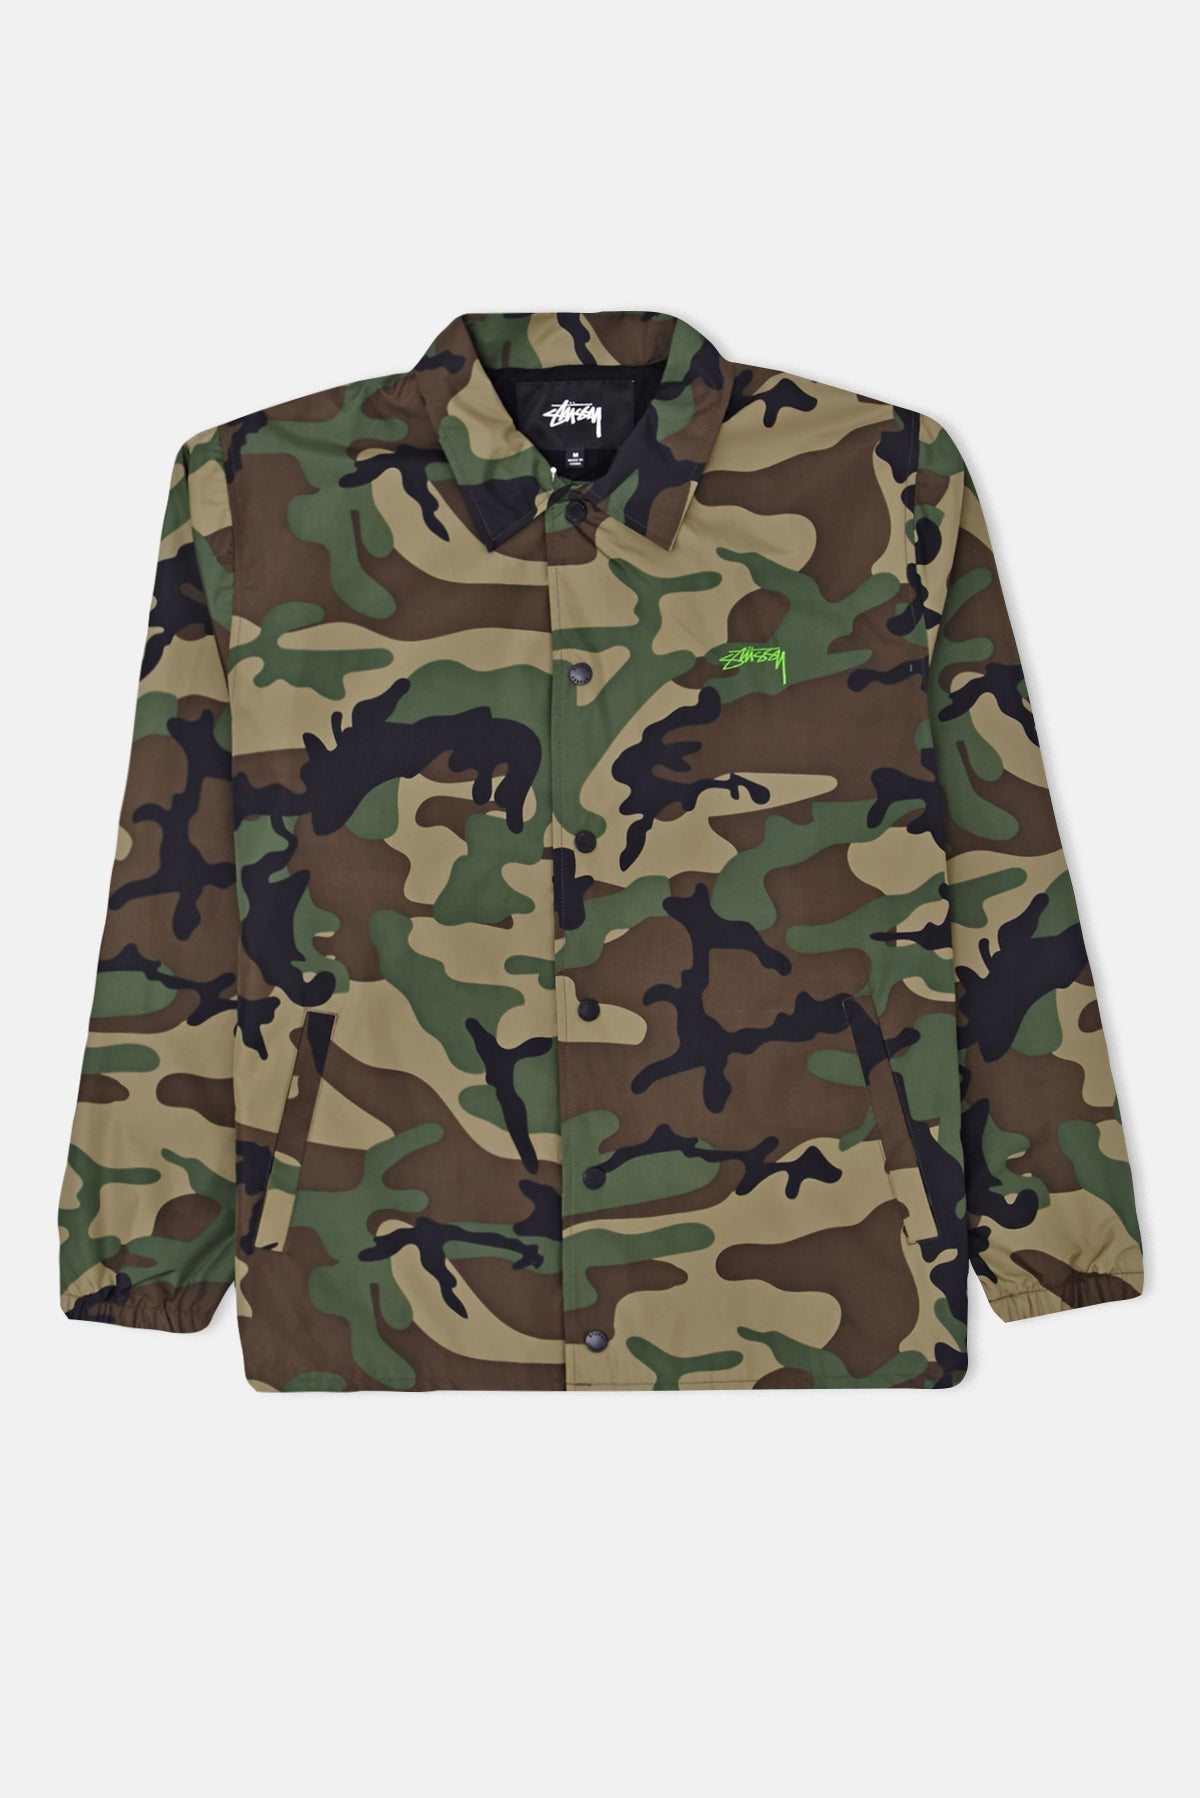 ce8c376e9849 Stussy Camo Cruize Coach Jacket available from Priory